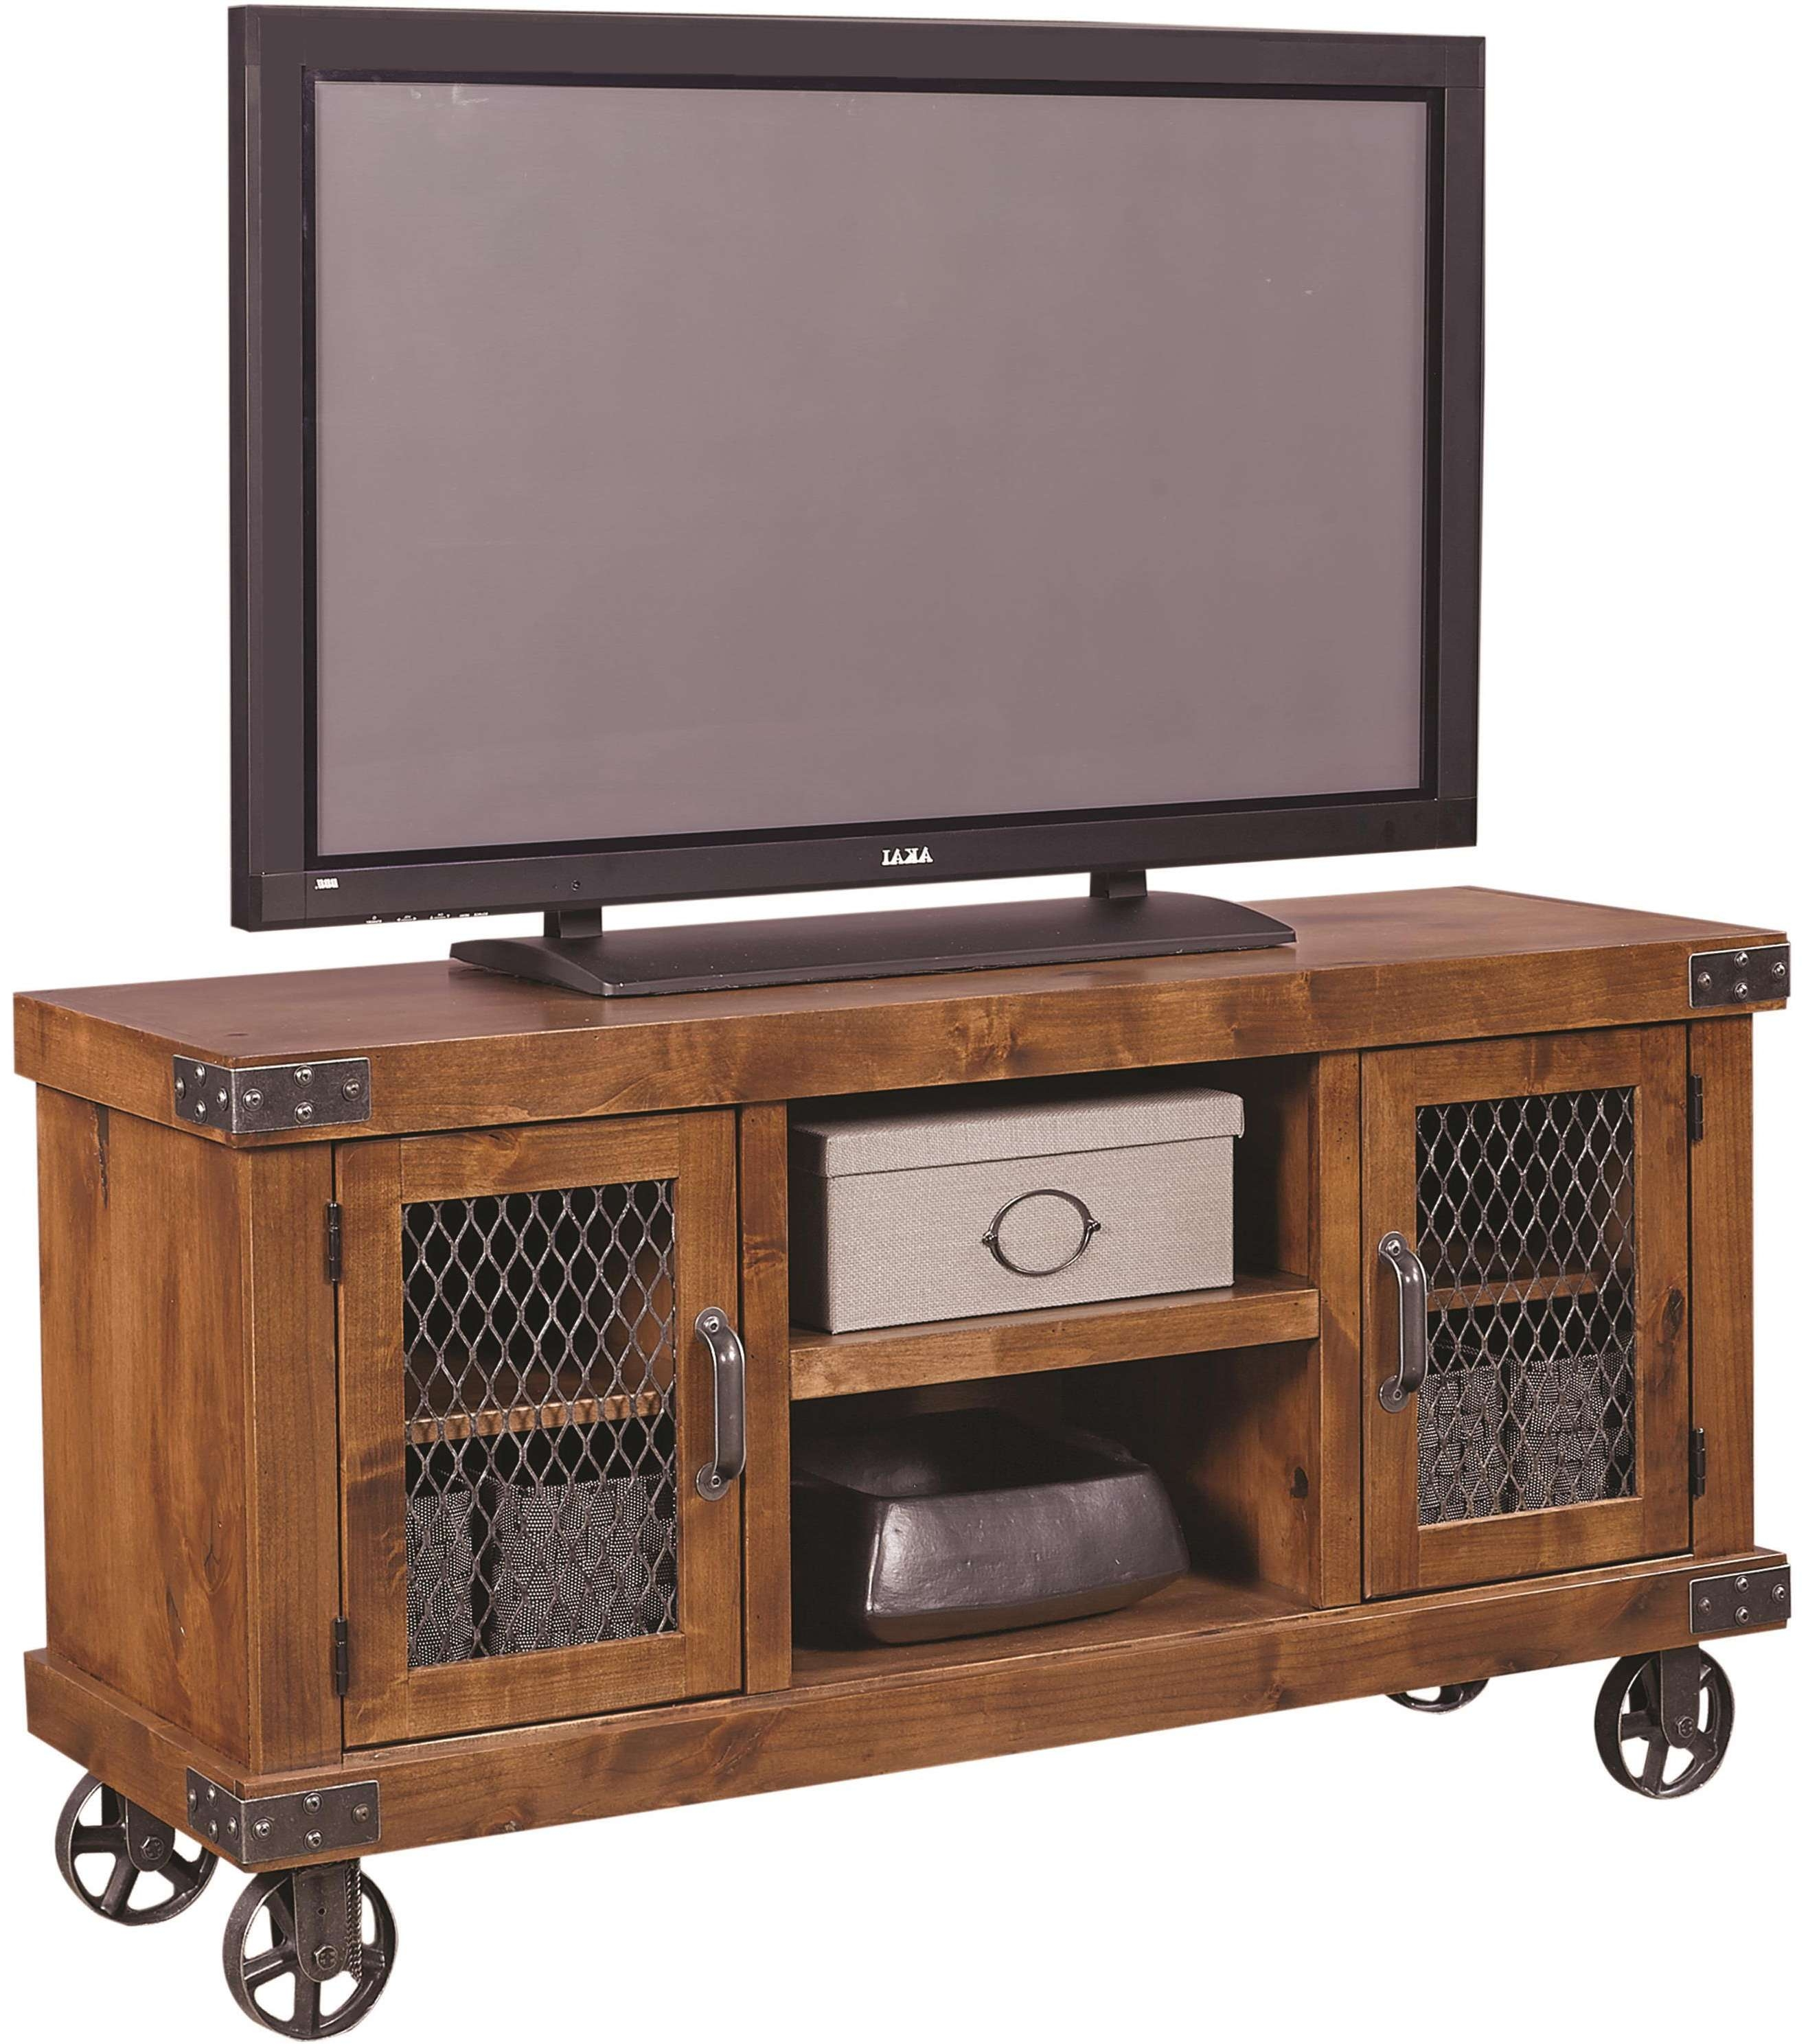 Encouraging Industrial Tv Stand Entertainment Center Rustic Wood In Industrial Tv Cabinets (View 8 of 20)